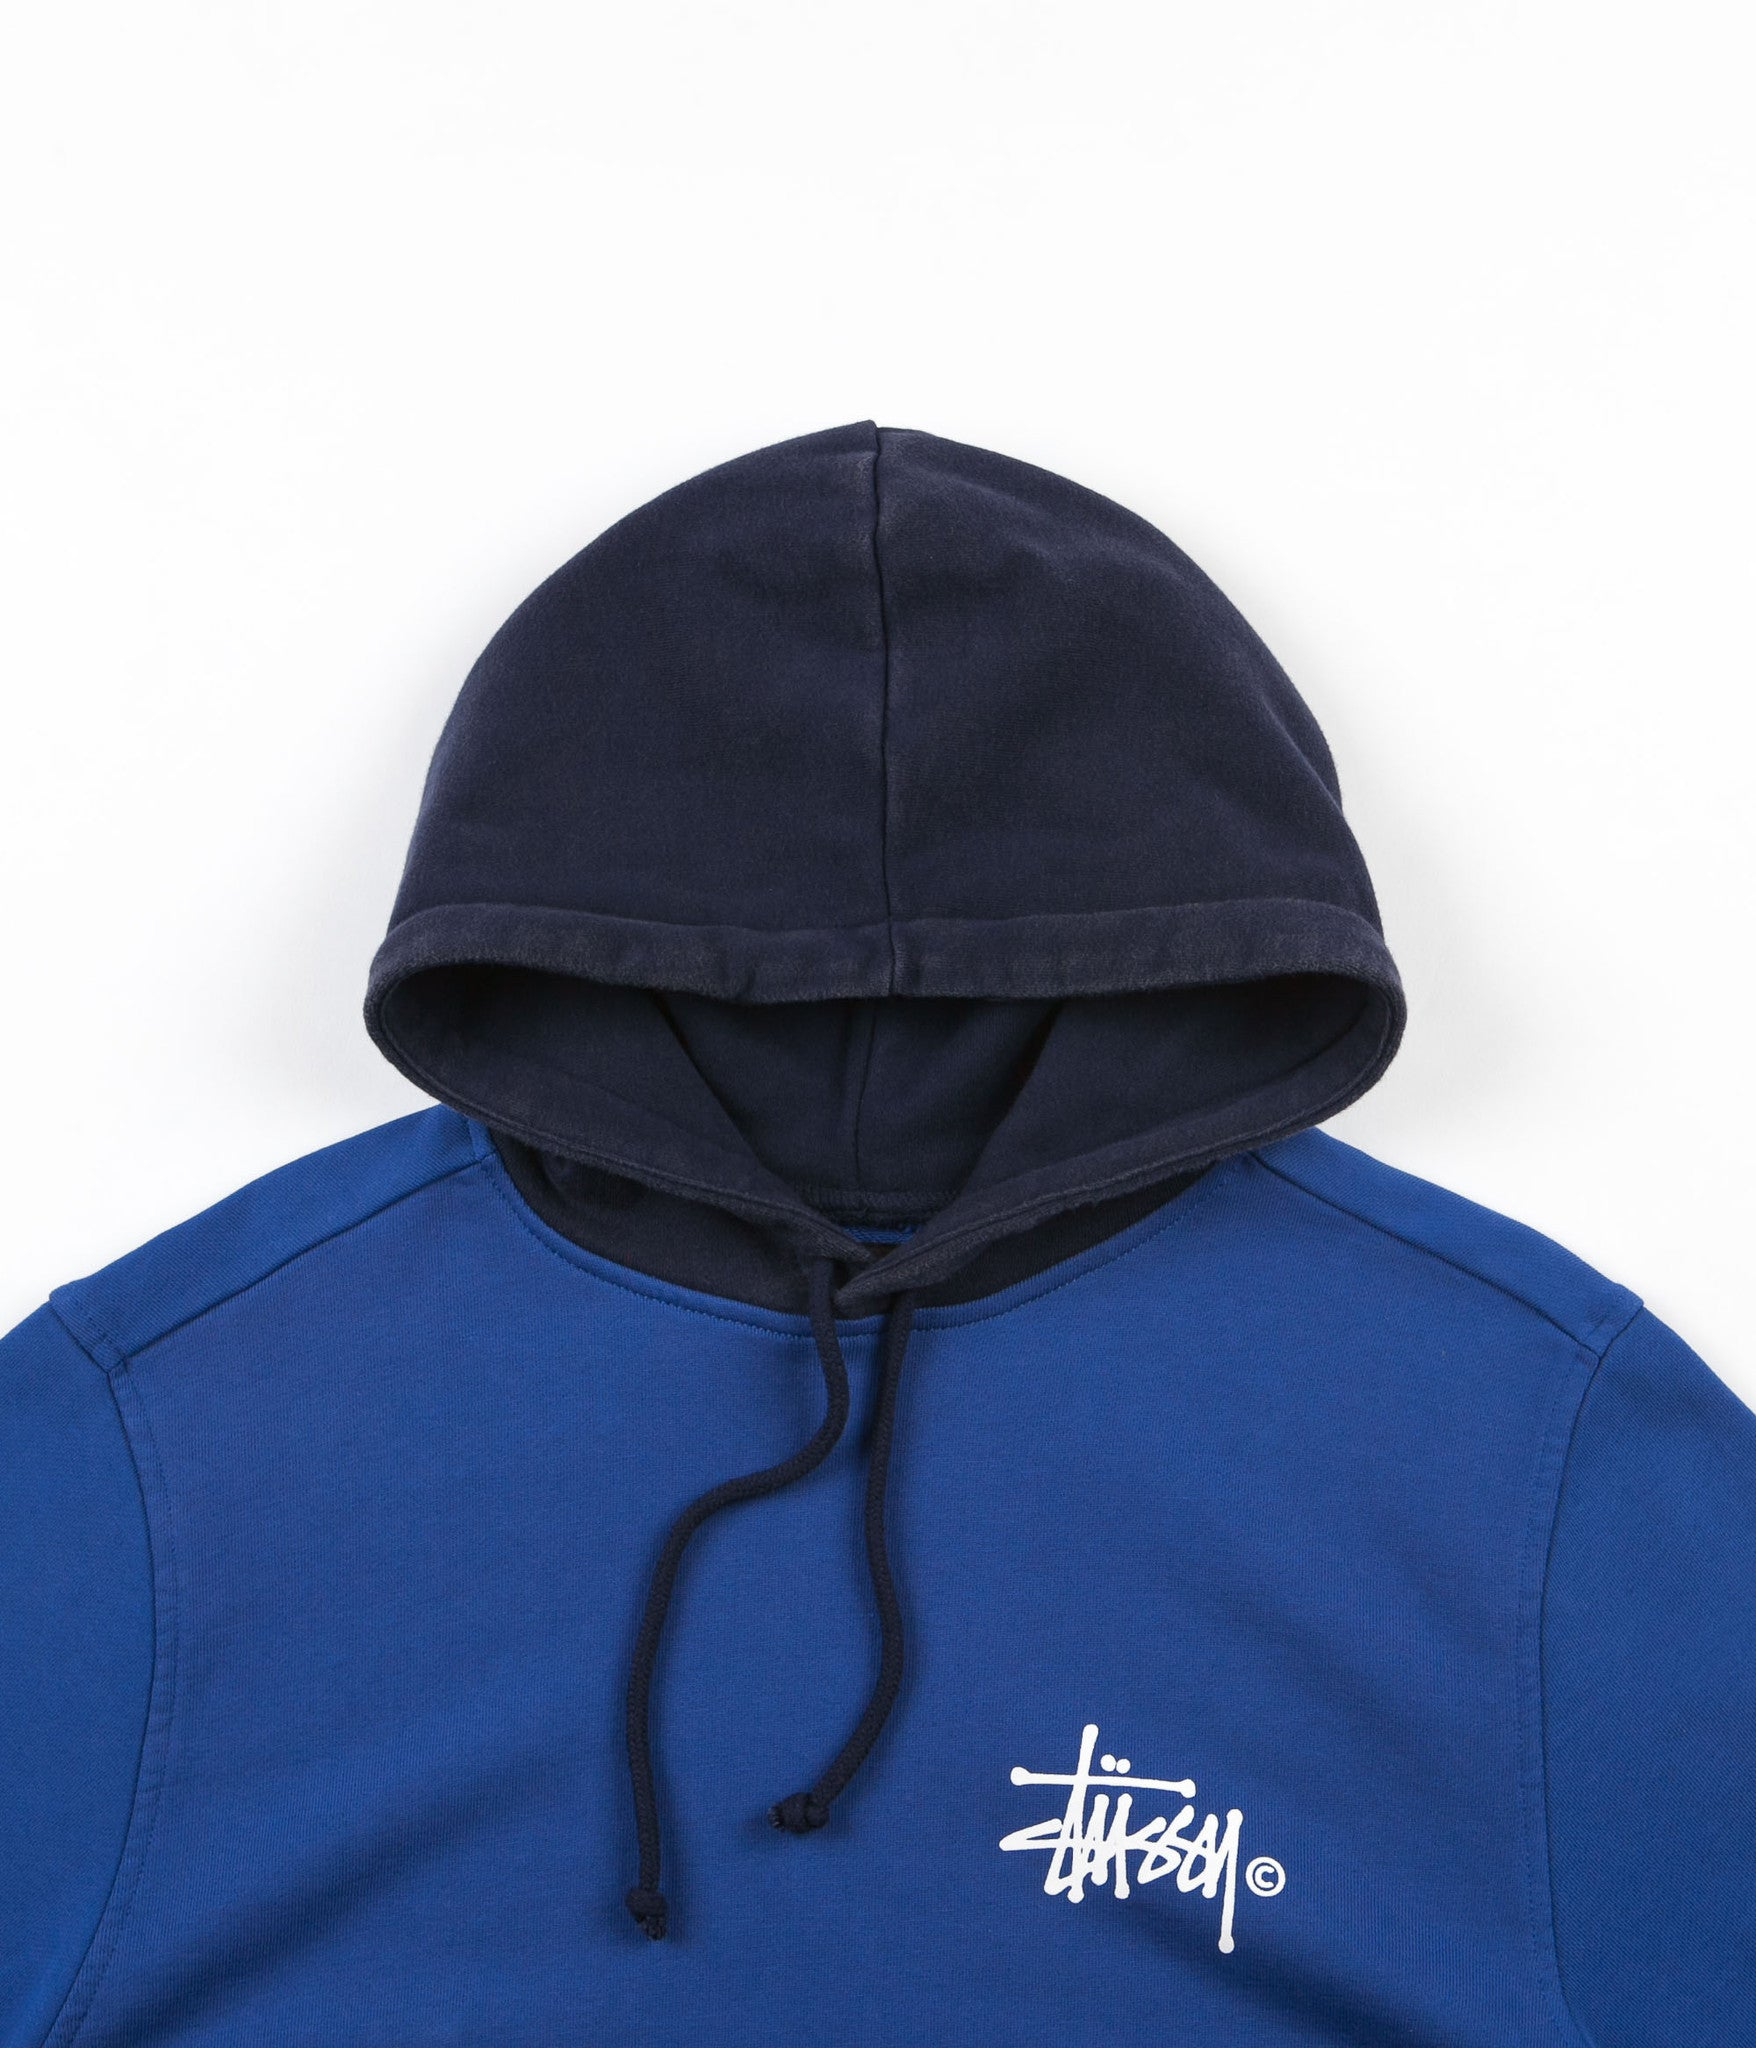 Stussy Two Tone Hooded Sweatshirt - Purple